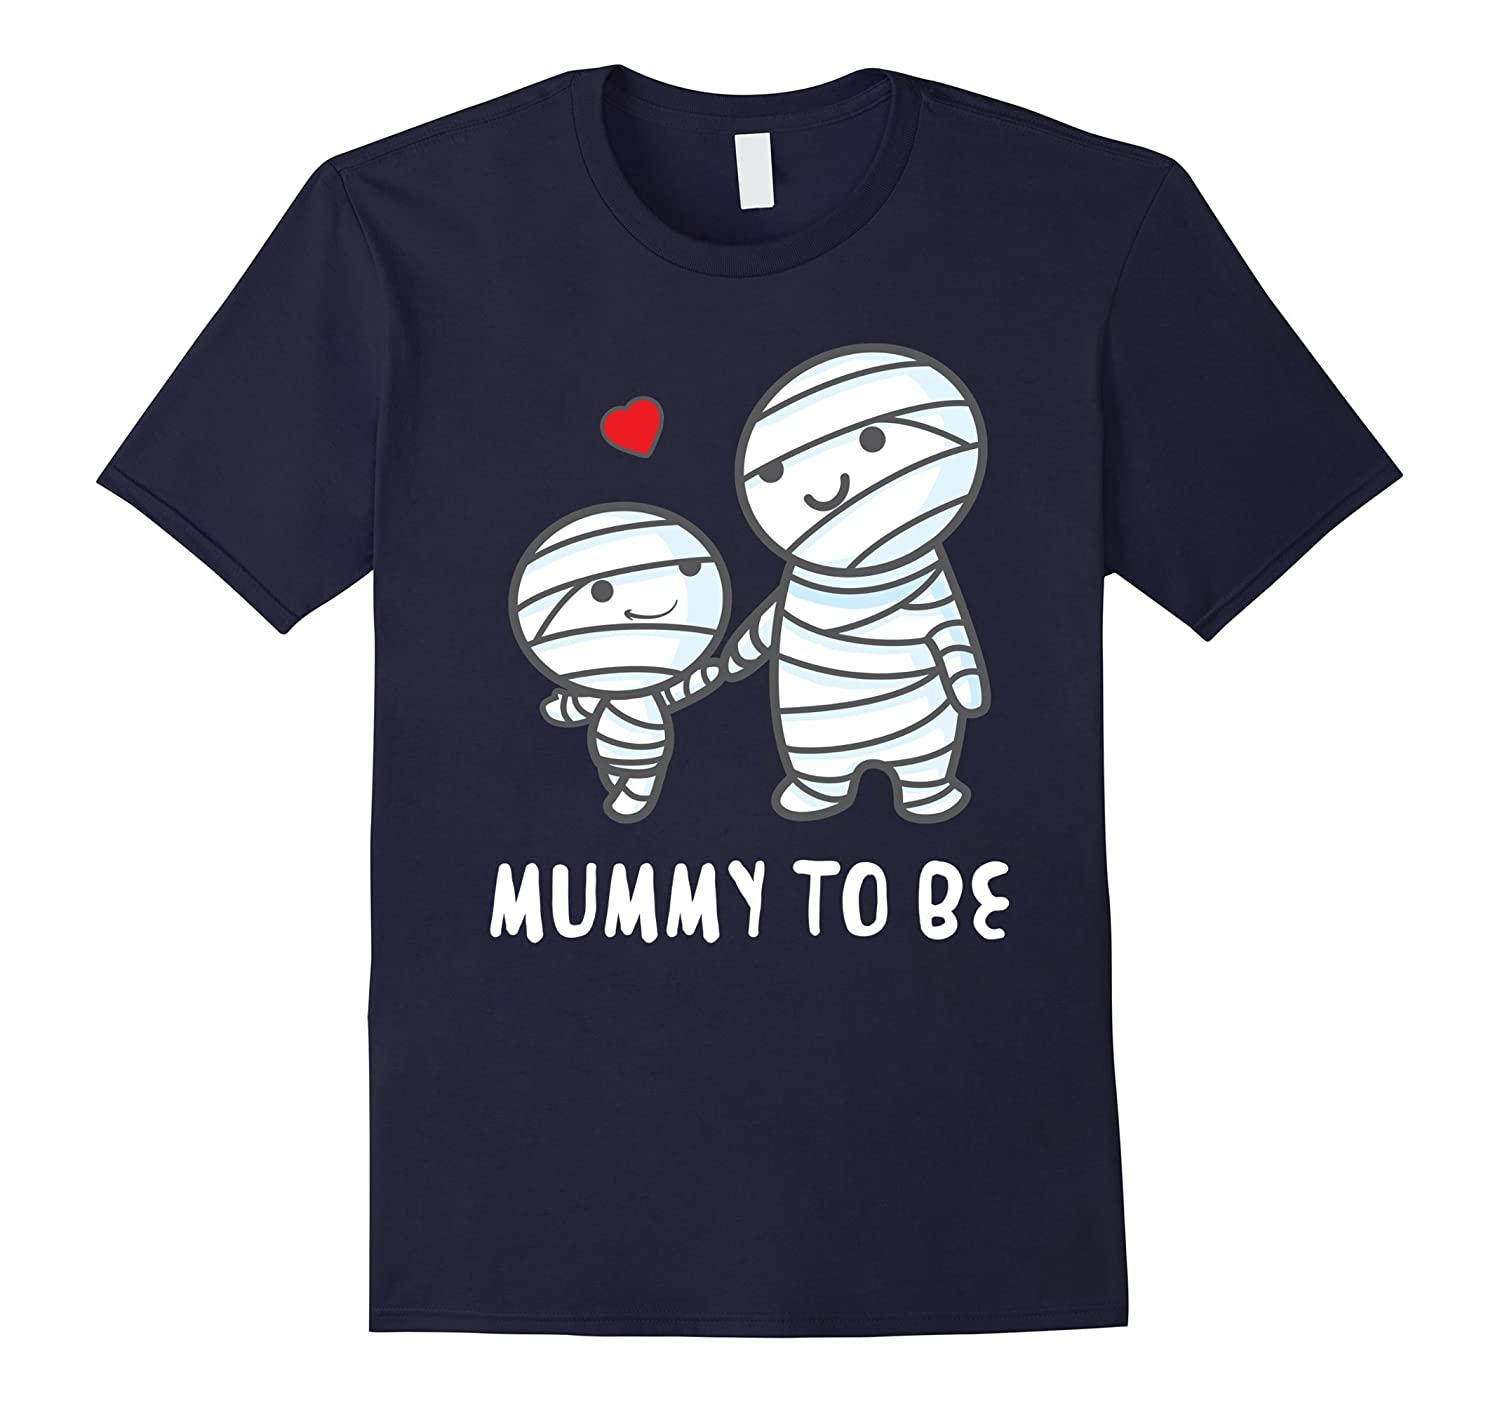 'Mummy To Be' Funny Halloween Maternity Shirt-T-Shirt